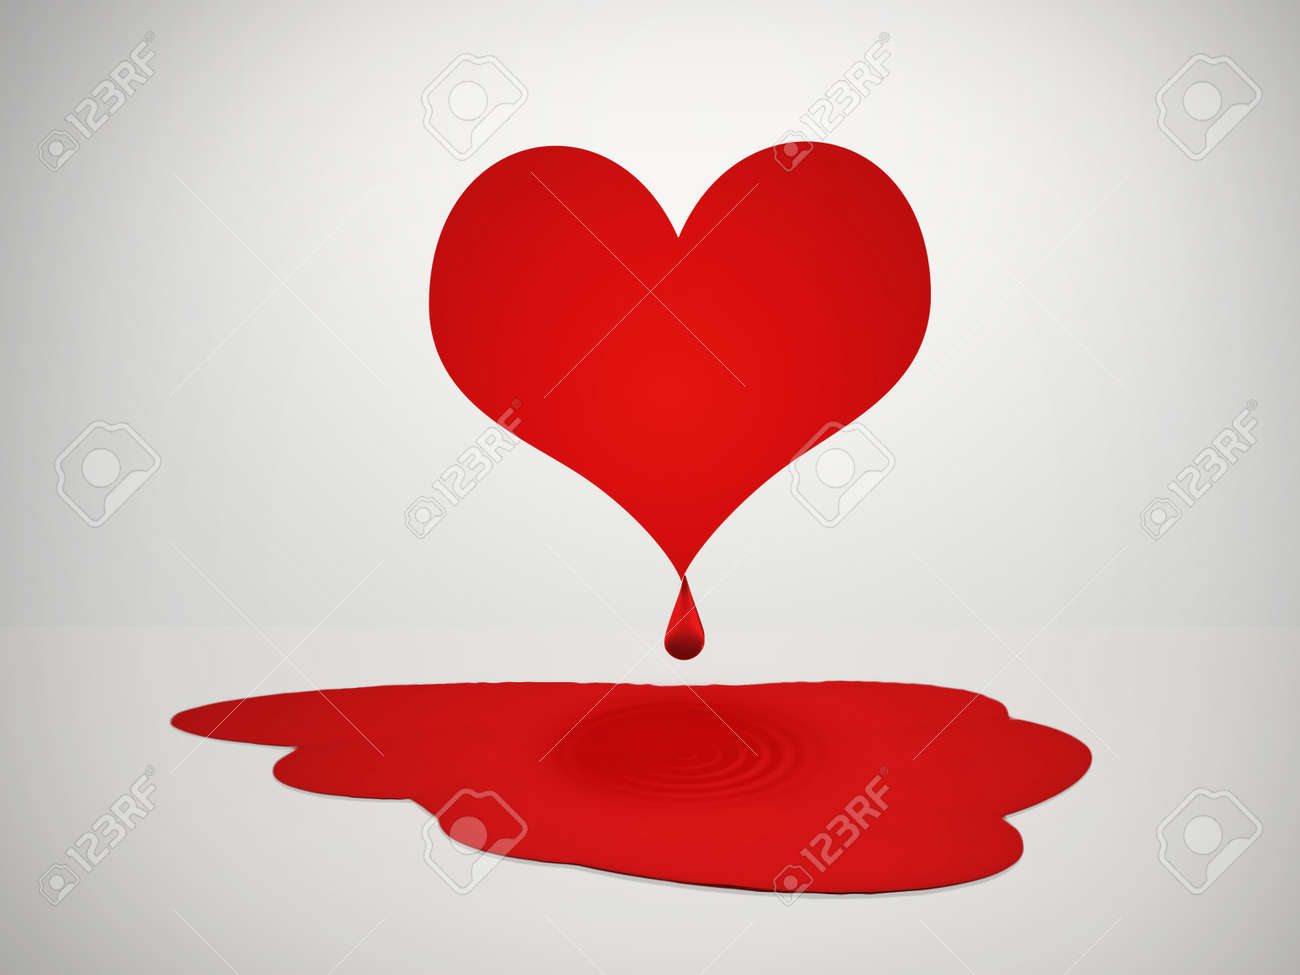 Bleeding heart stock photo picture and royalty free image image bleeding heart stock photo 20344220 buycottarizona